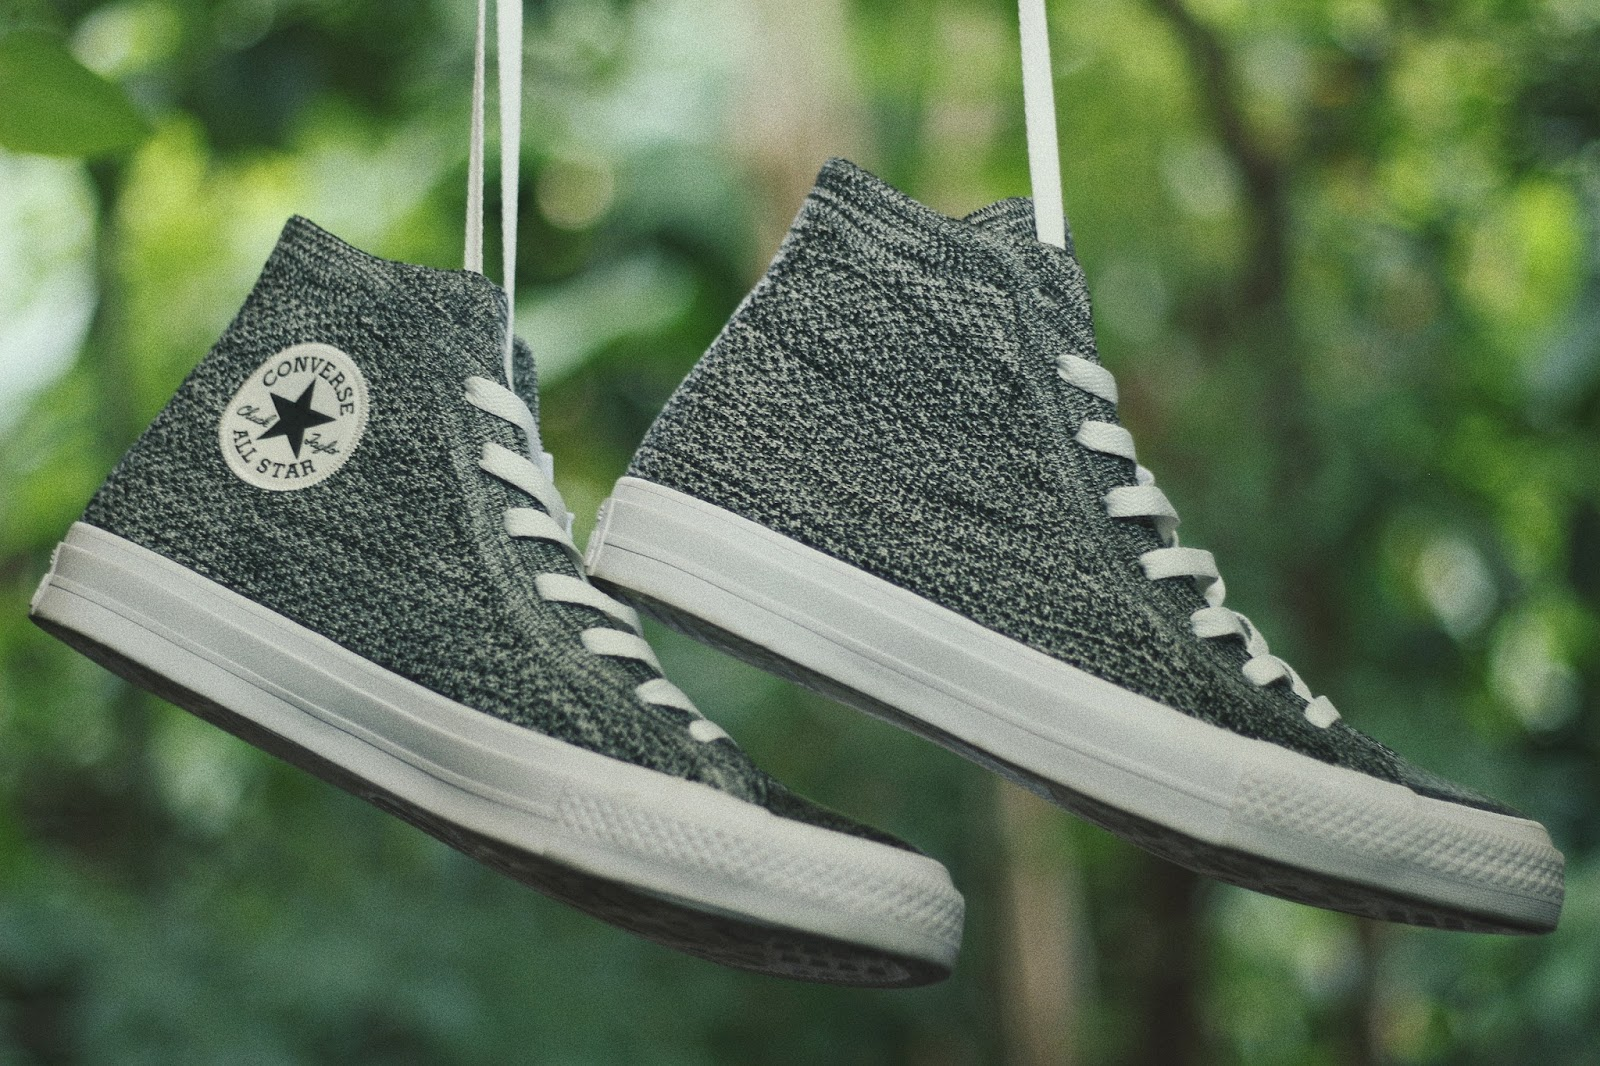 Two of my favorite shoe brand Converse x Nike just released a breathable 1a4ba7c1b